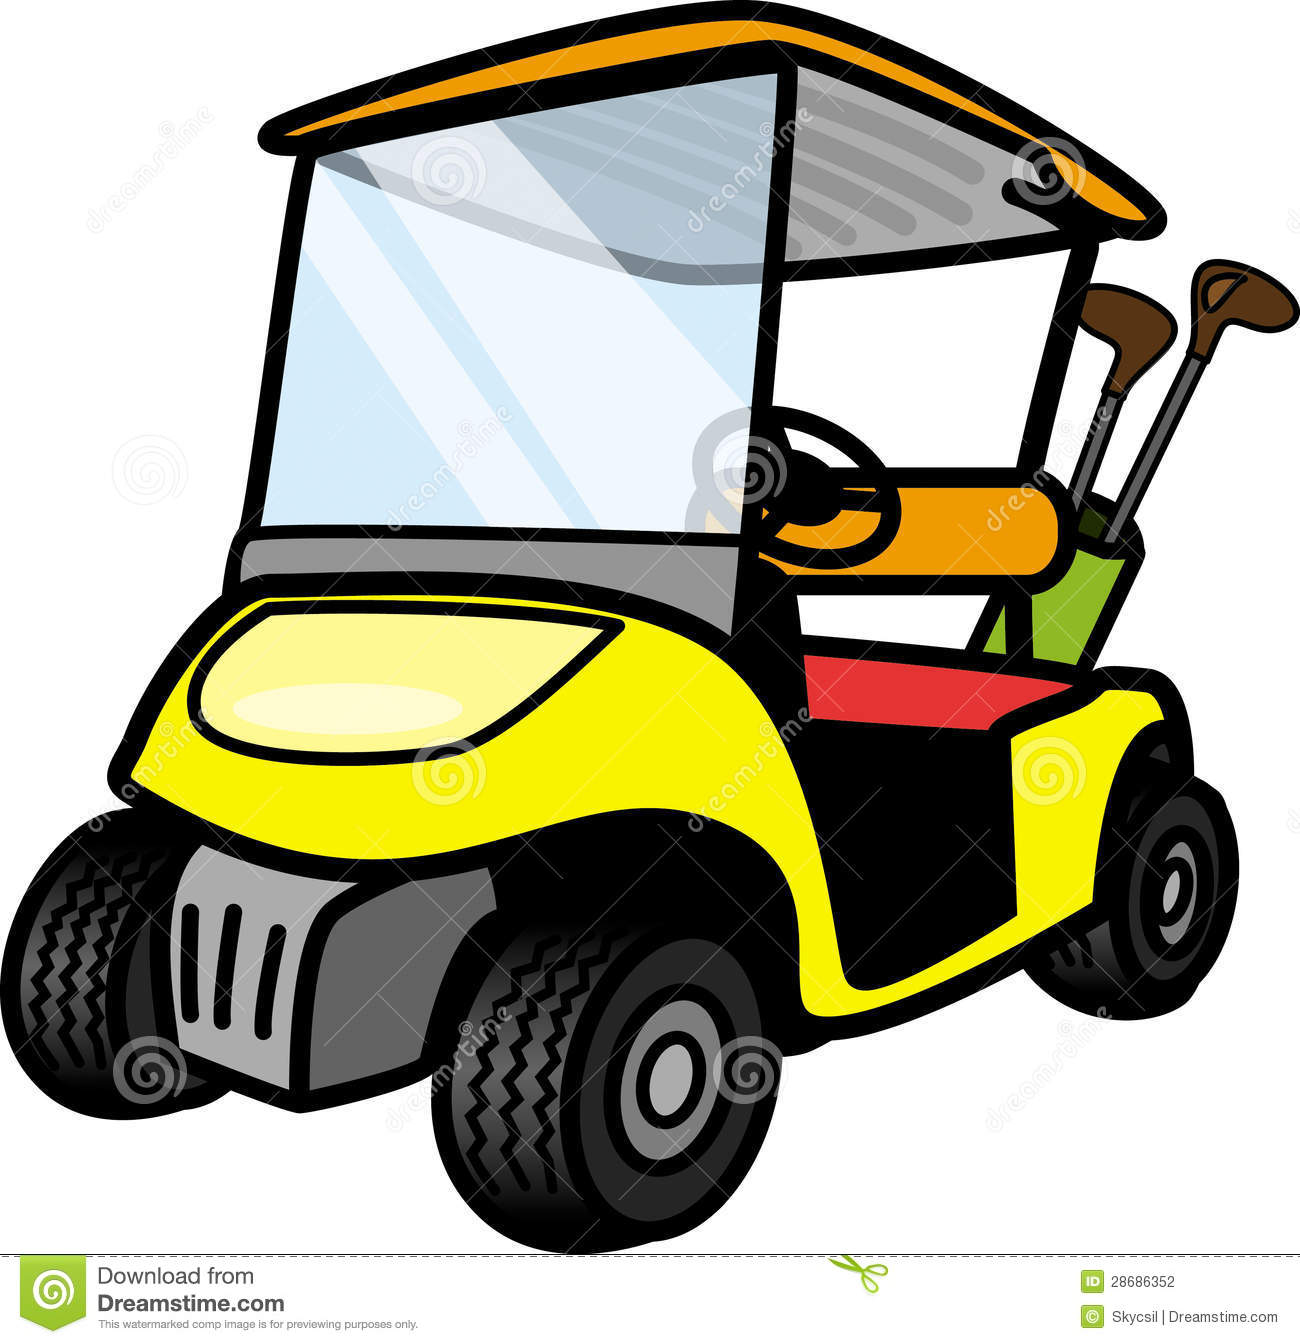 Cartoon Golf Cart Clipart at Dynamic pickaxe 2019.